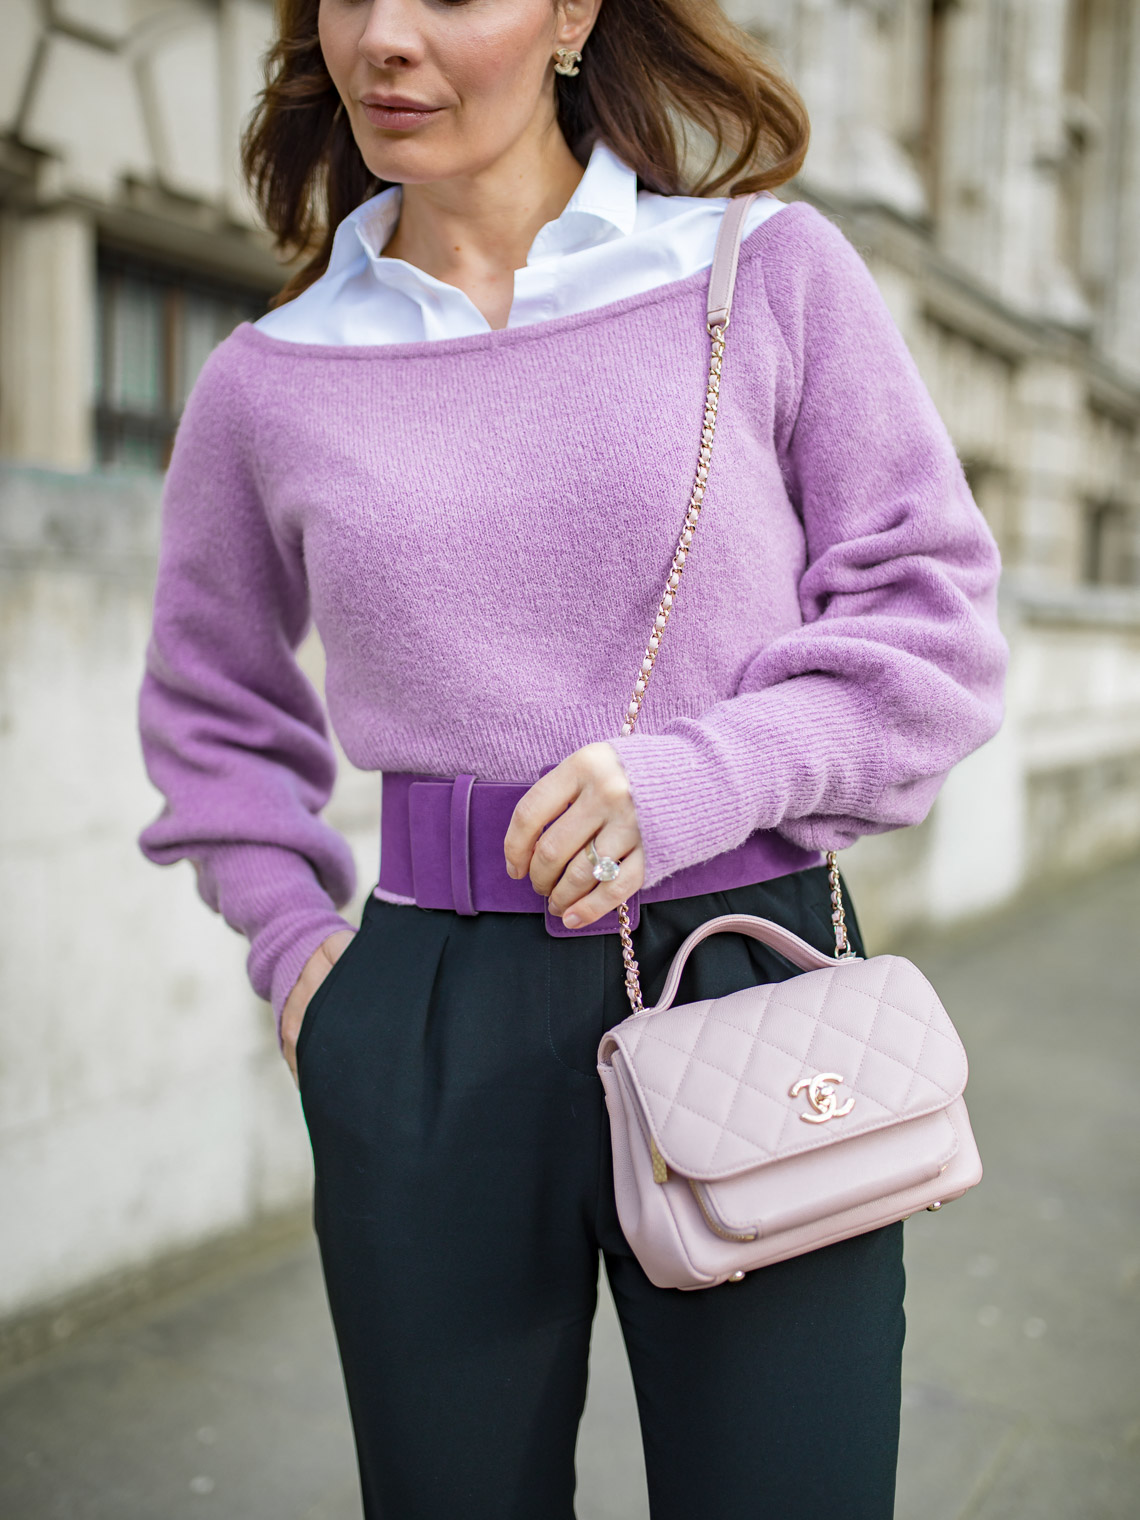 Off the shoulder purple sweater with white shirt and pink Chanel bag